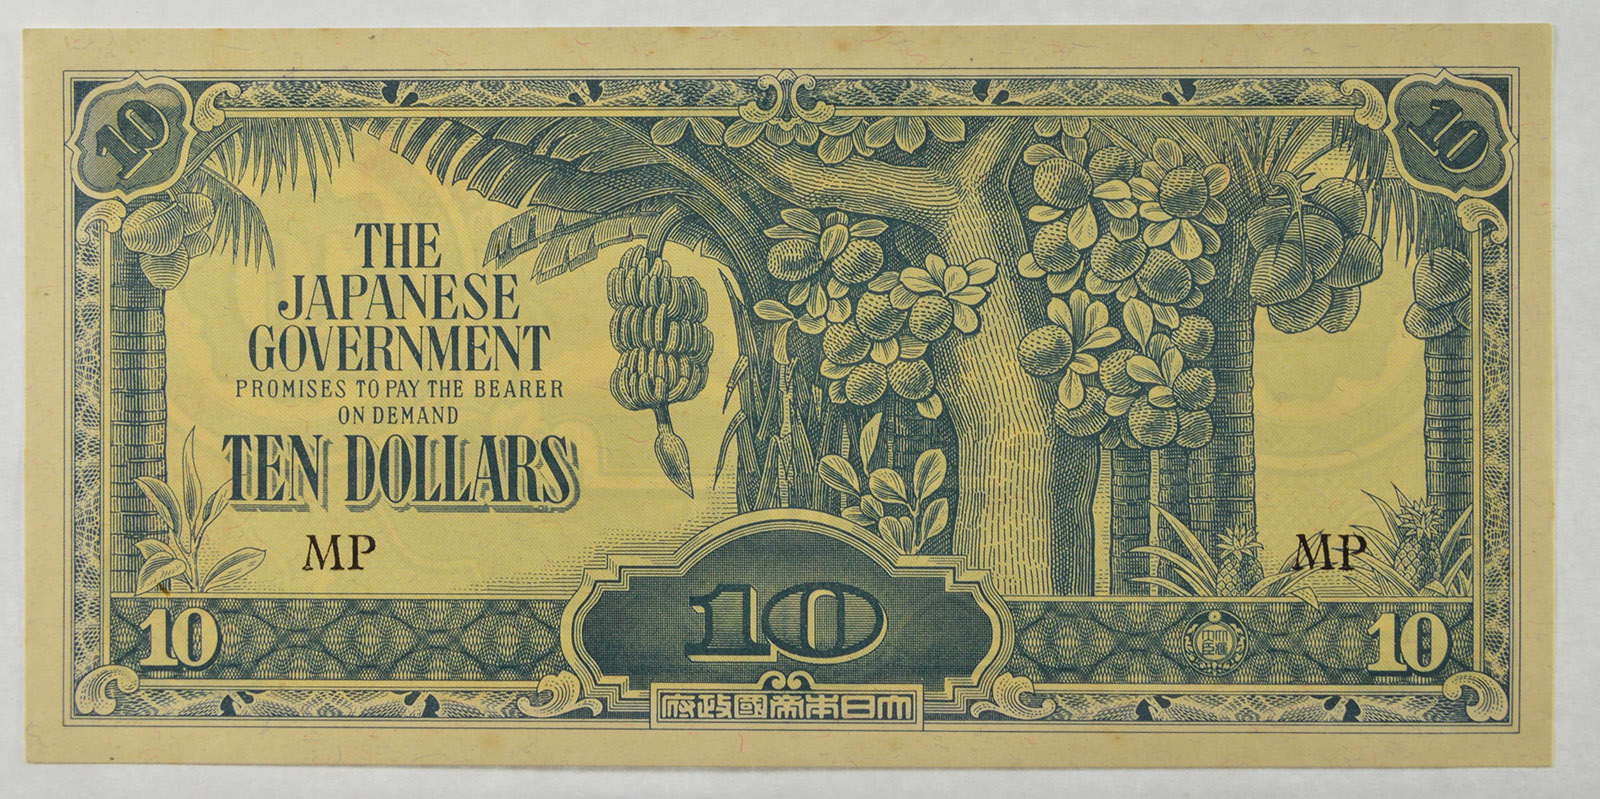 1940s The Japanese Government 10 Ten Dollar Japan